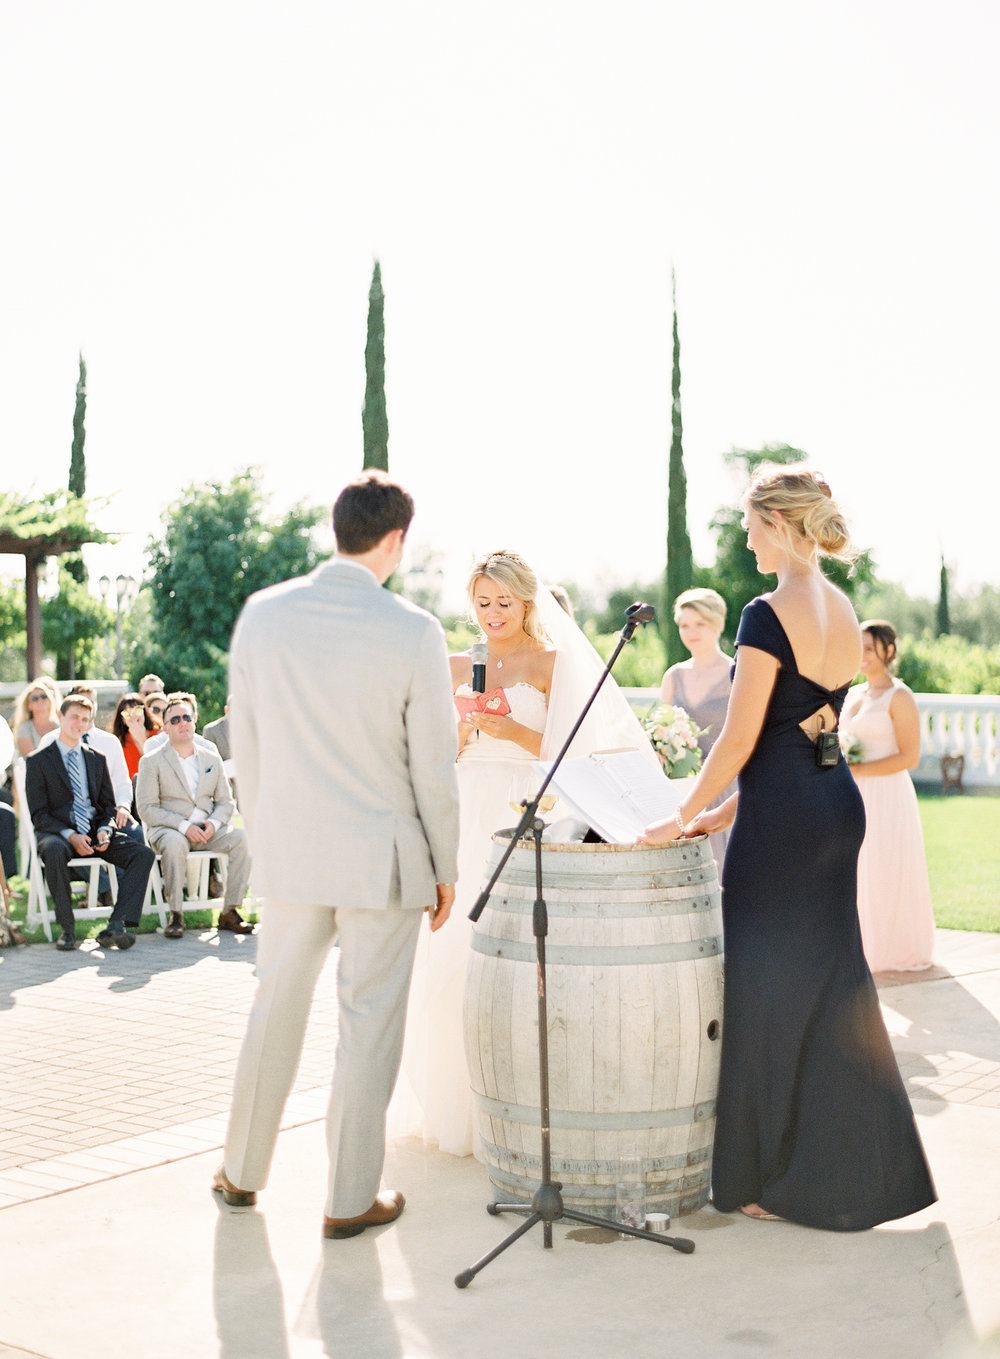 AllieGwinn_Wedding_WhiskersandWillow_068.jpg